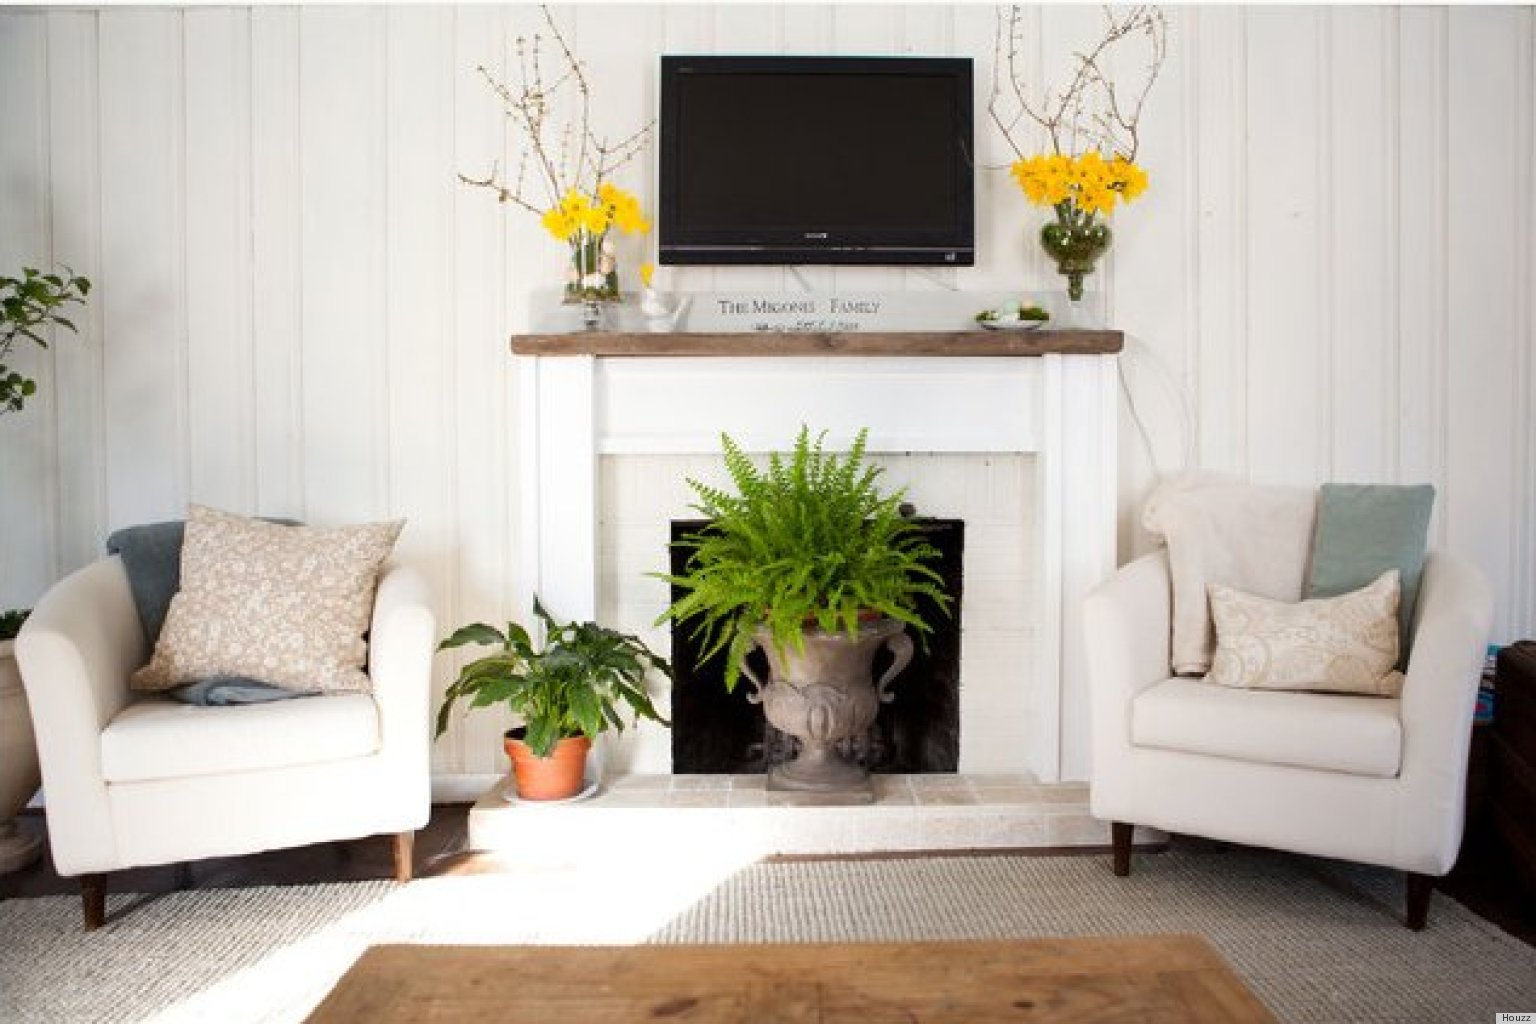 10 Ways To Decorate Your Fireplace In The Summer, Since